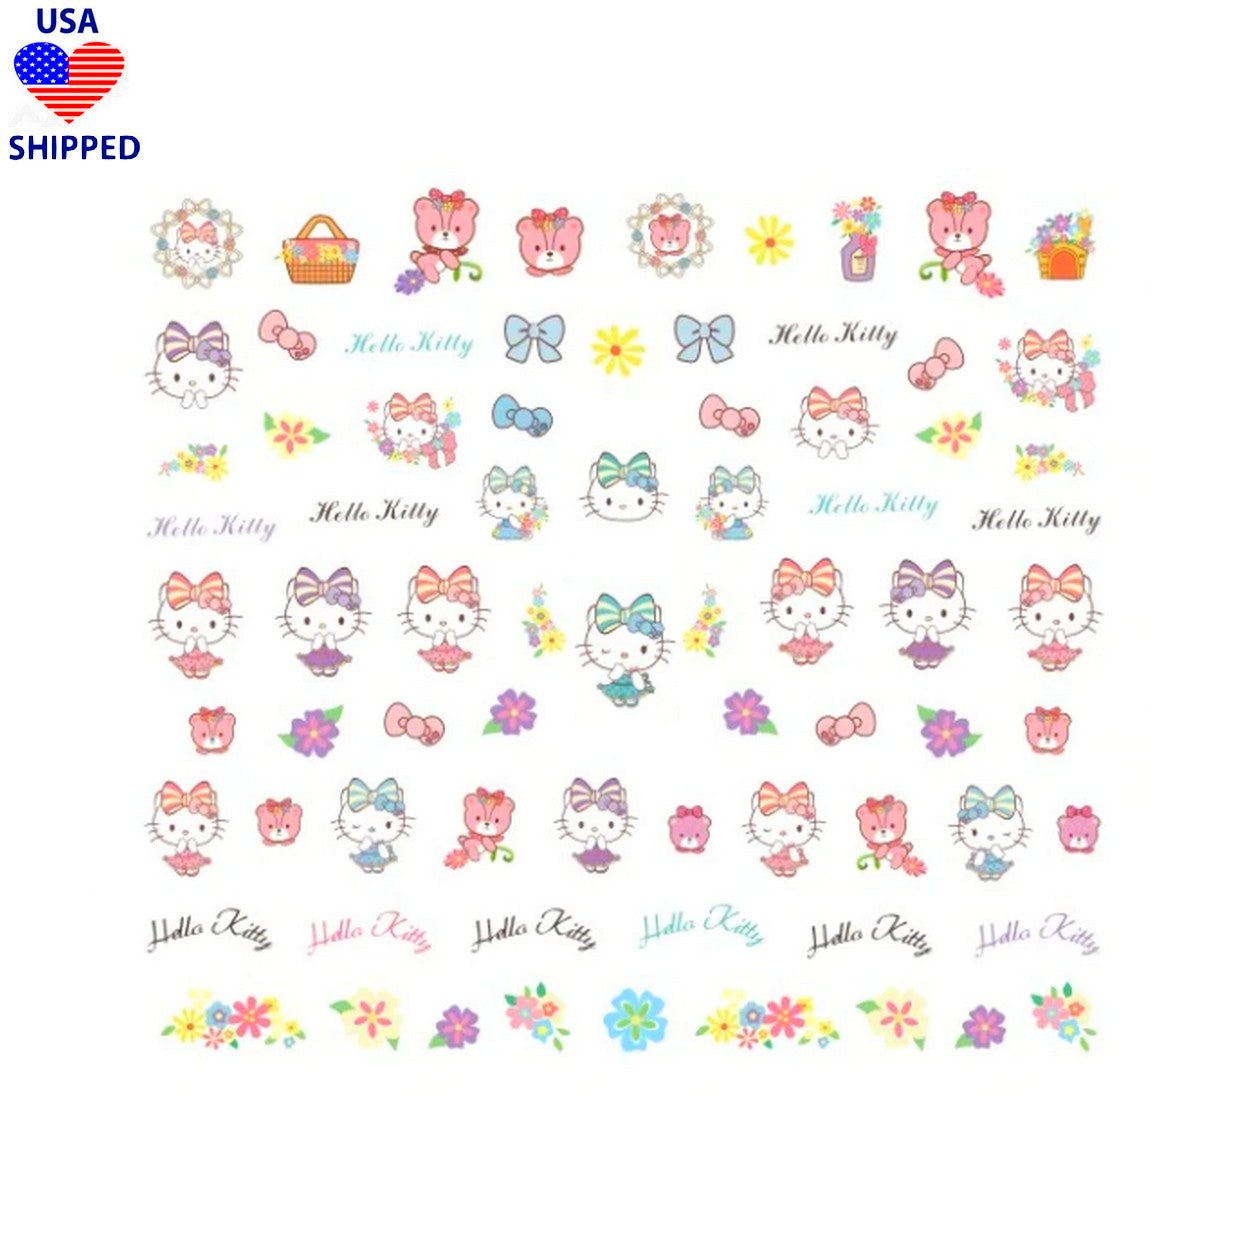 (USA) Kawaii Kitty Cutie Nail Stickers